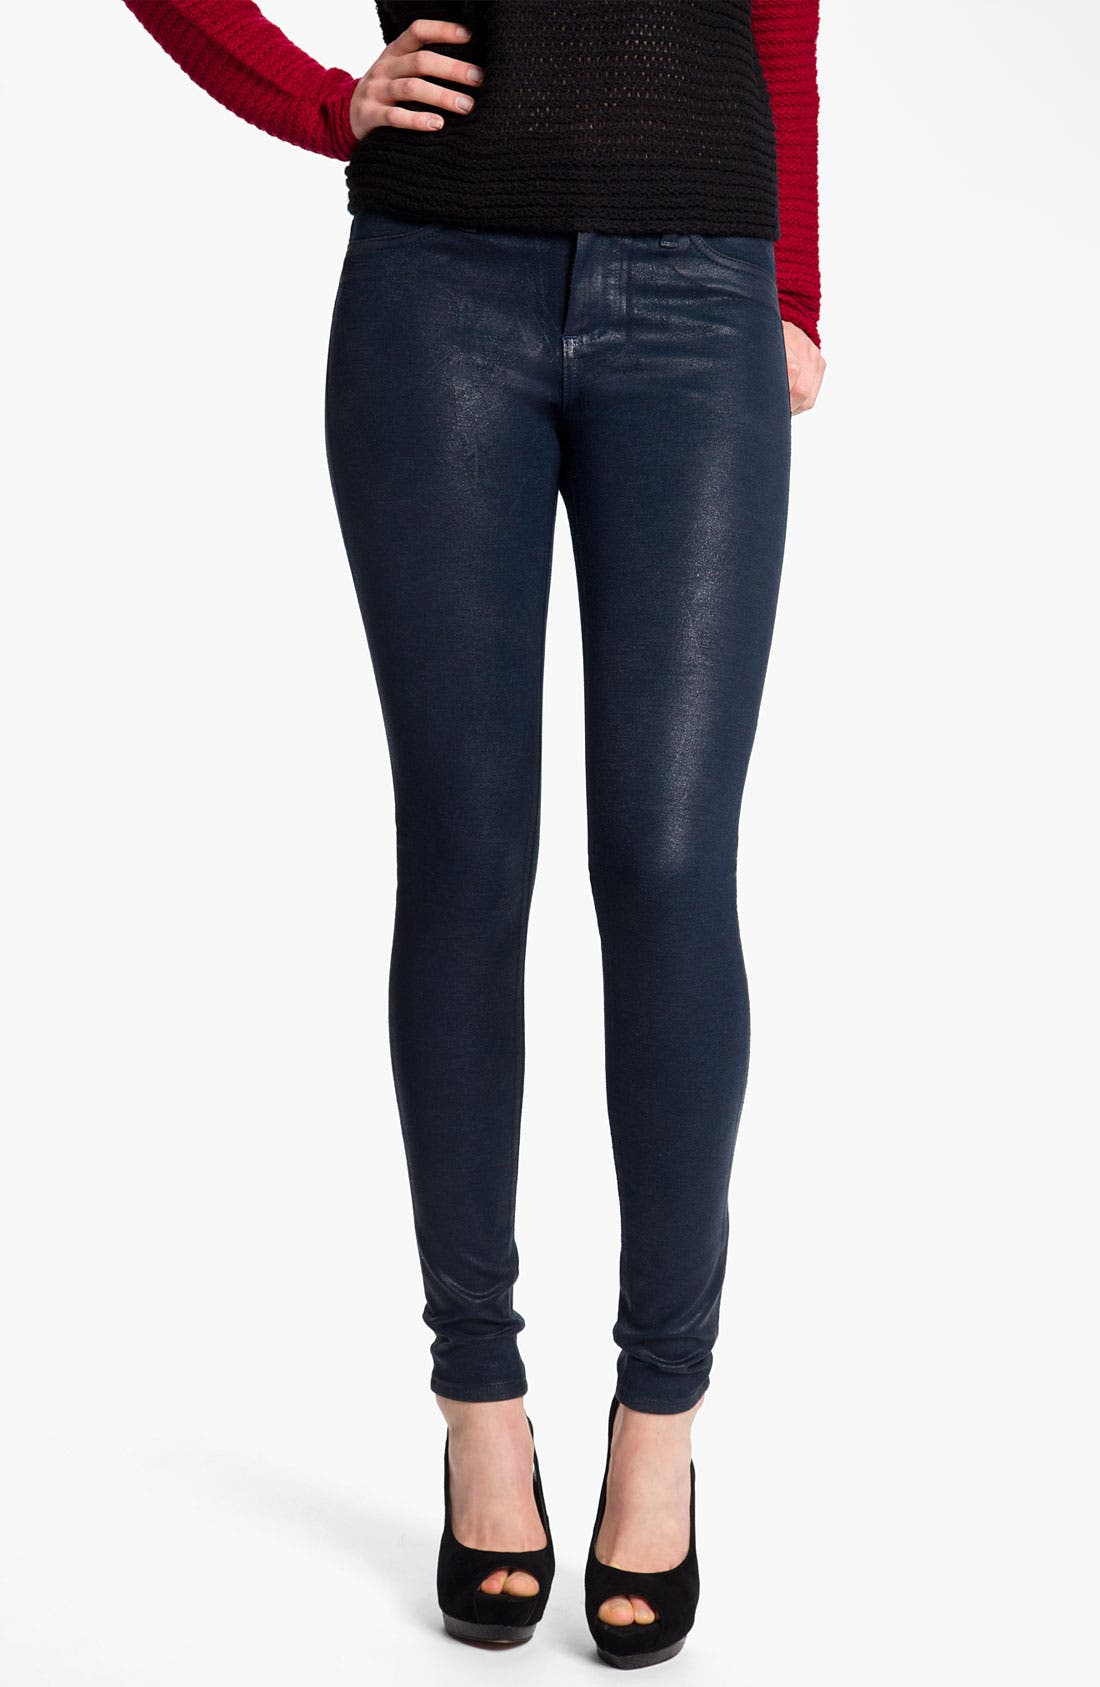 Alternate Image 1 Selected - KUT from the Kloth Coated Skinny Jeans